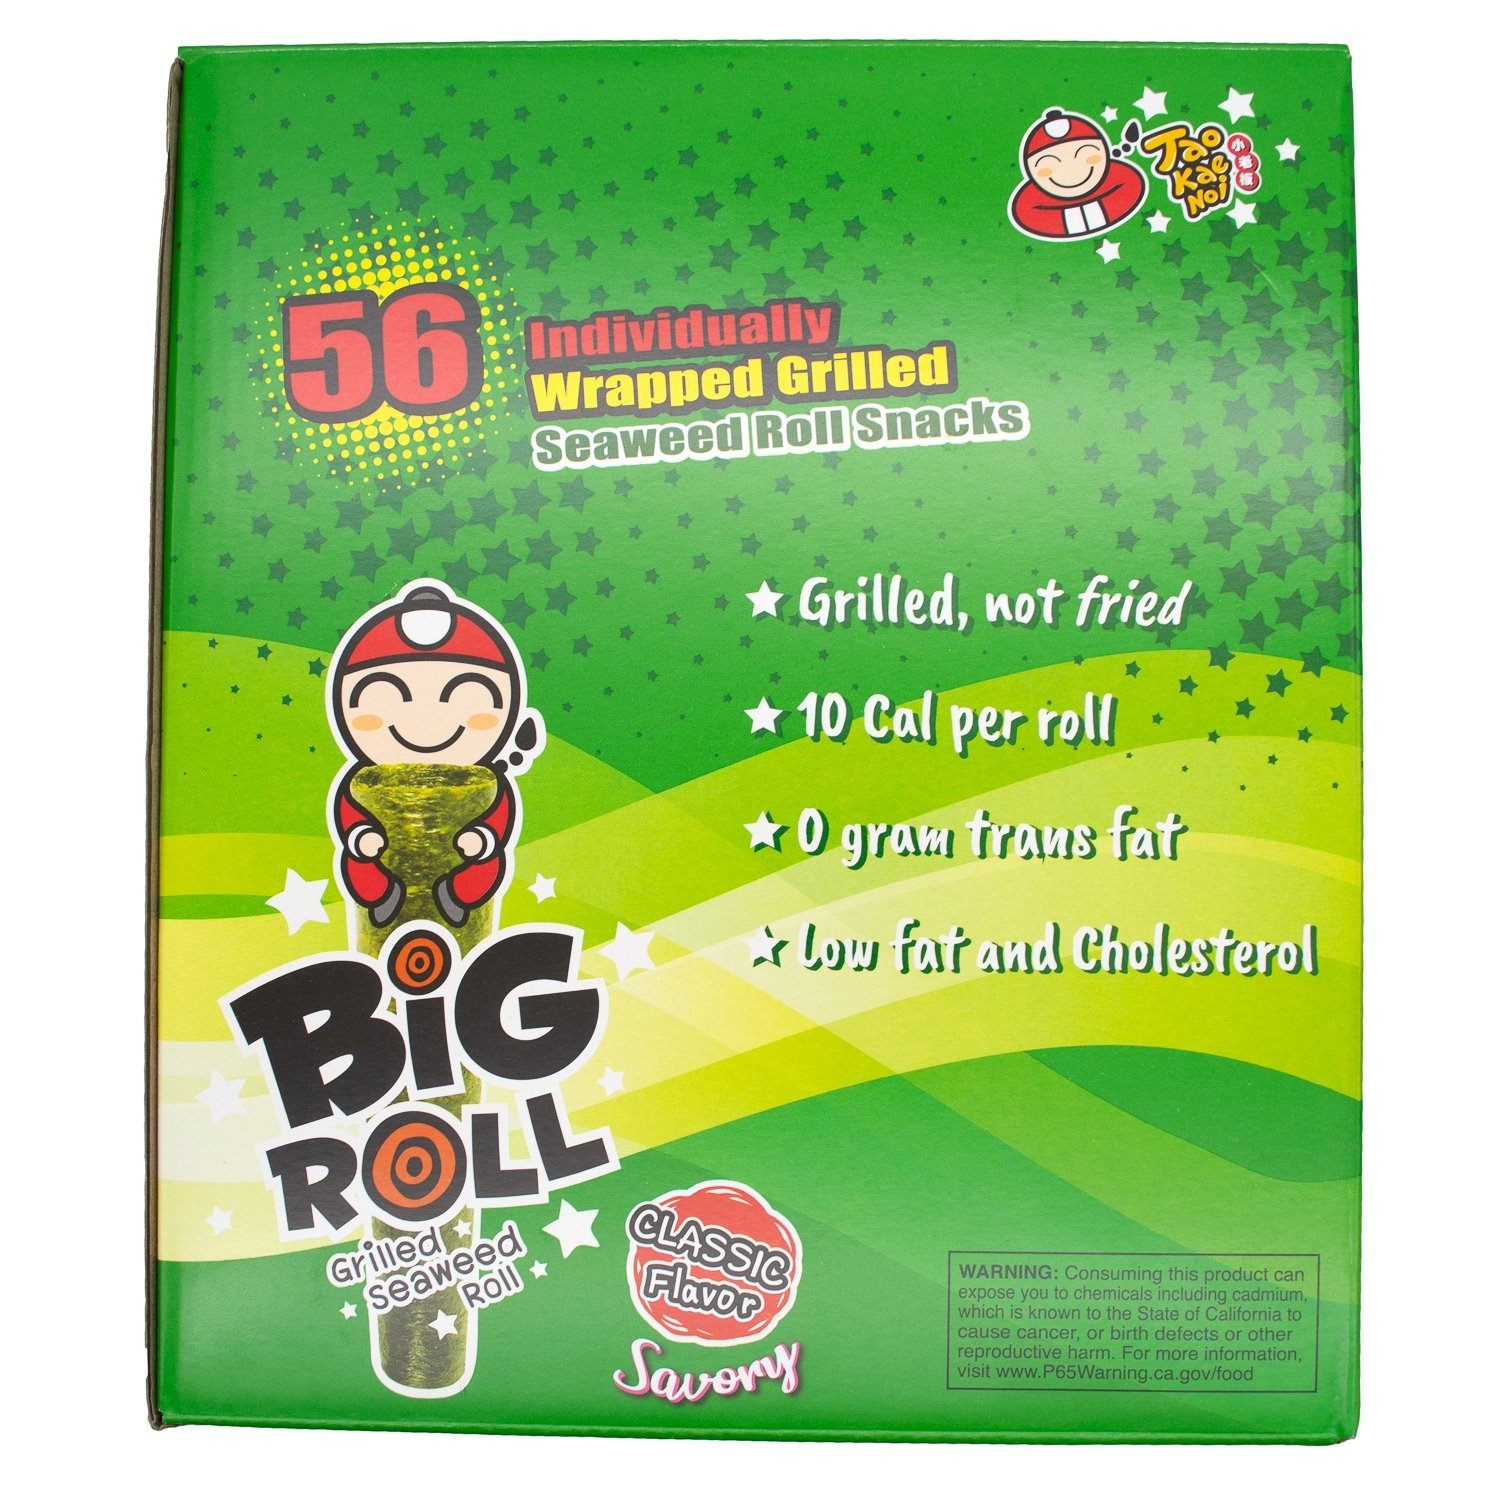 Tao Kae Noi Big Roll Grilled Seaweed Tao Kae Noi Original 0.11 Oz-56 Count